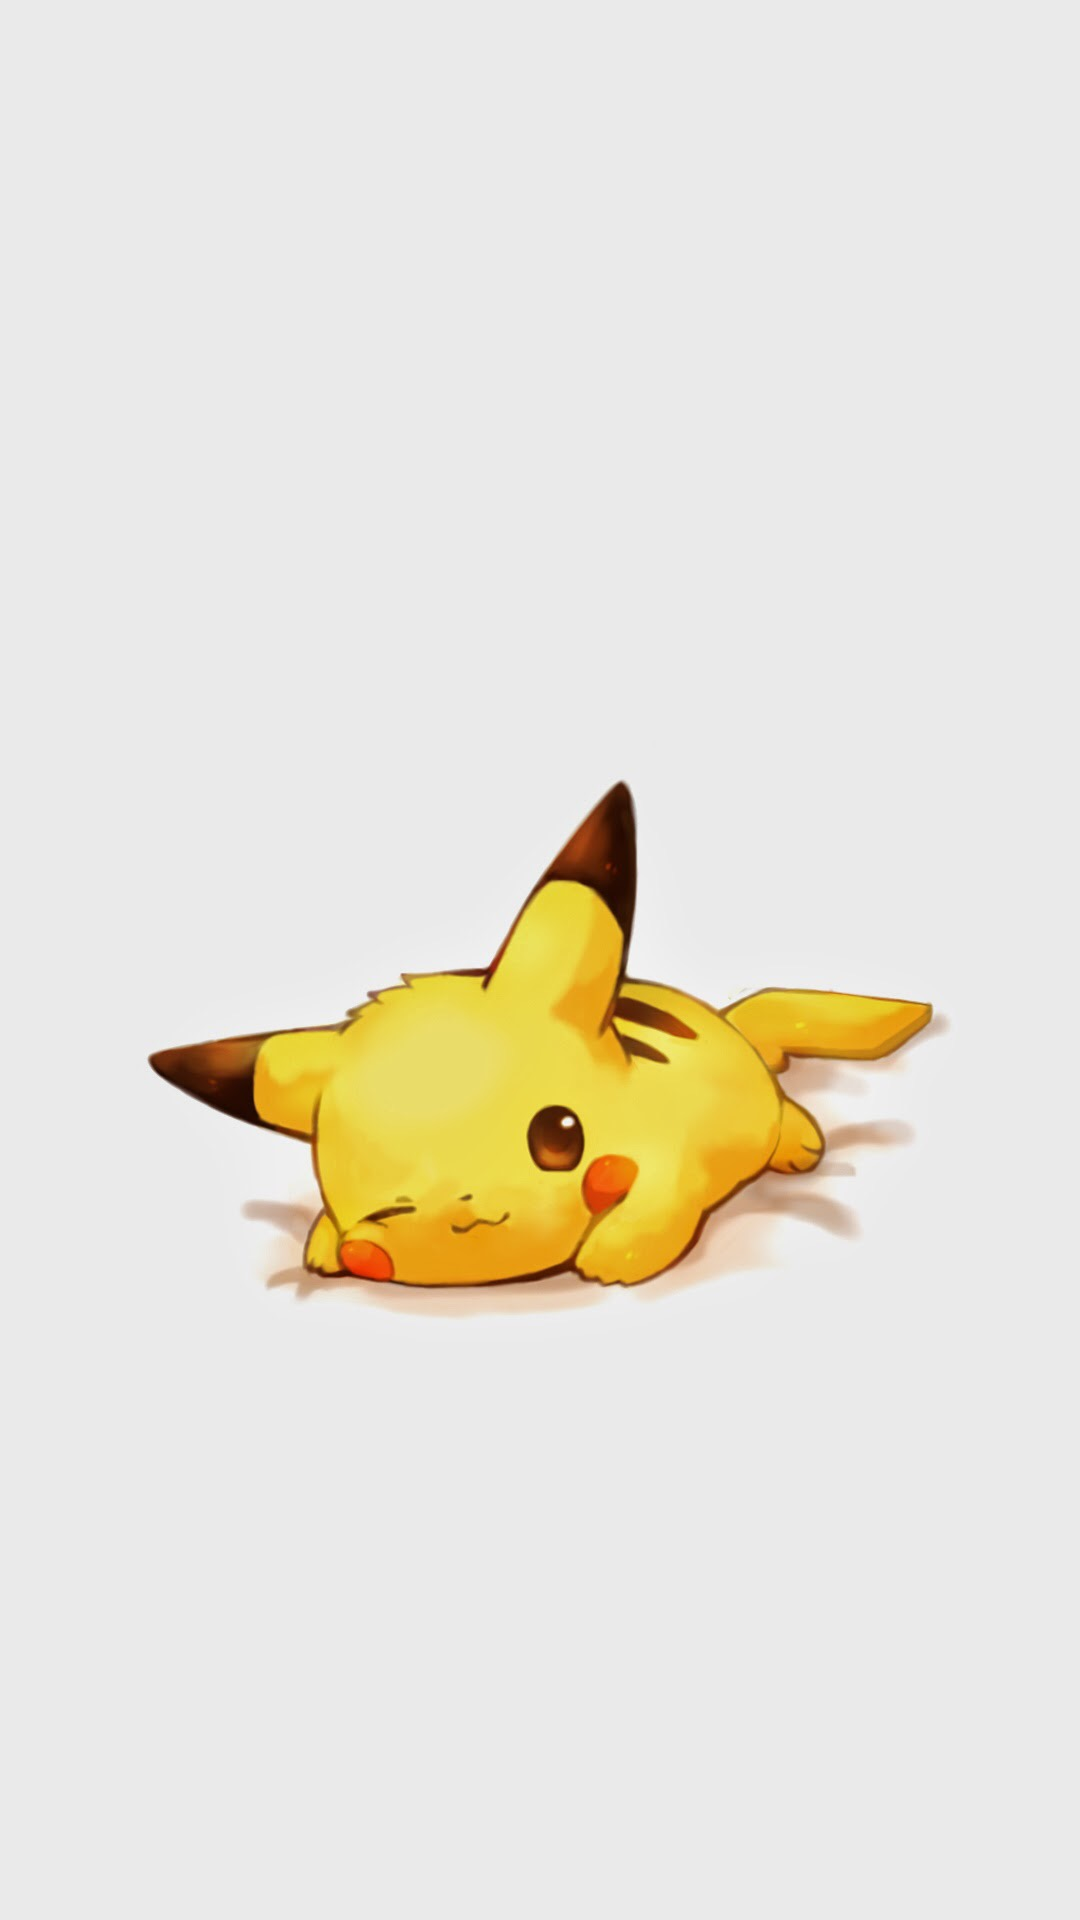 Cute-Pikachu-Download-more-awesome-Pokemon-iphone-pretty-wallpaper-wp4406158